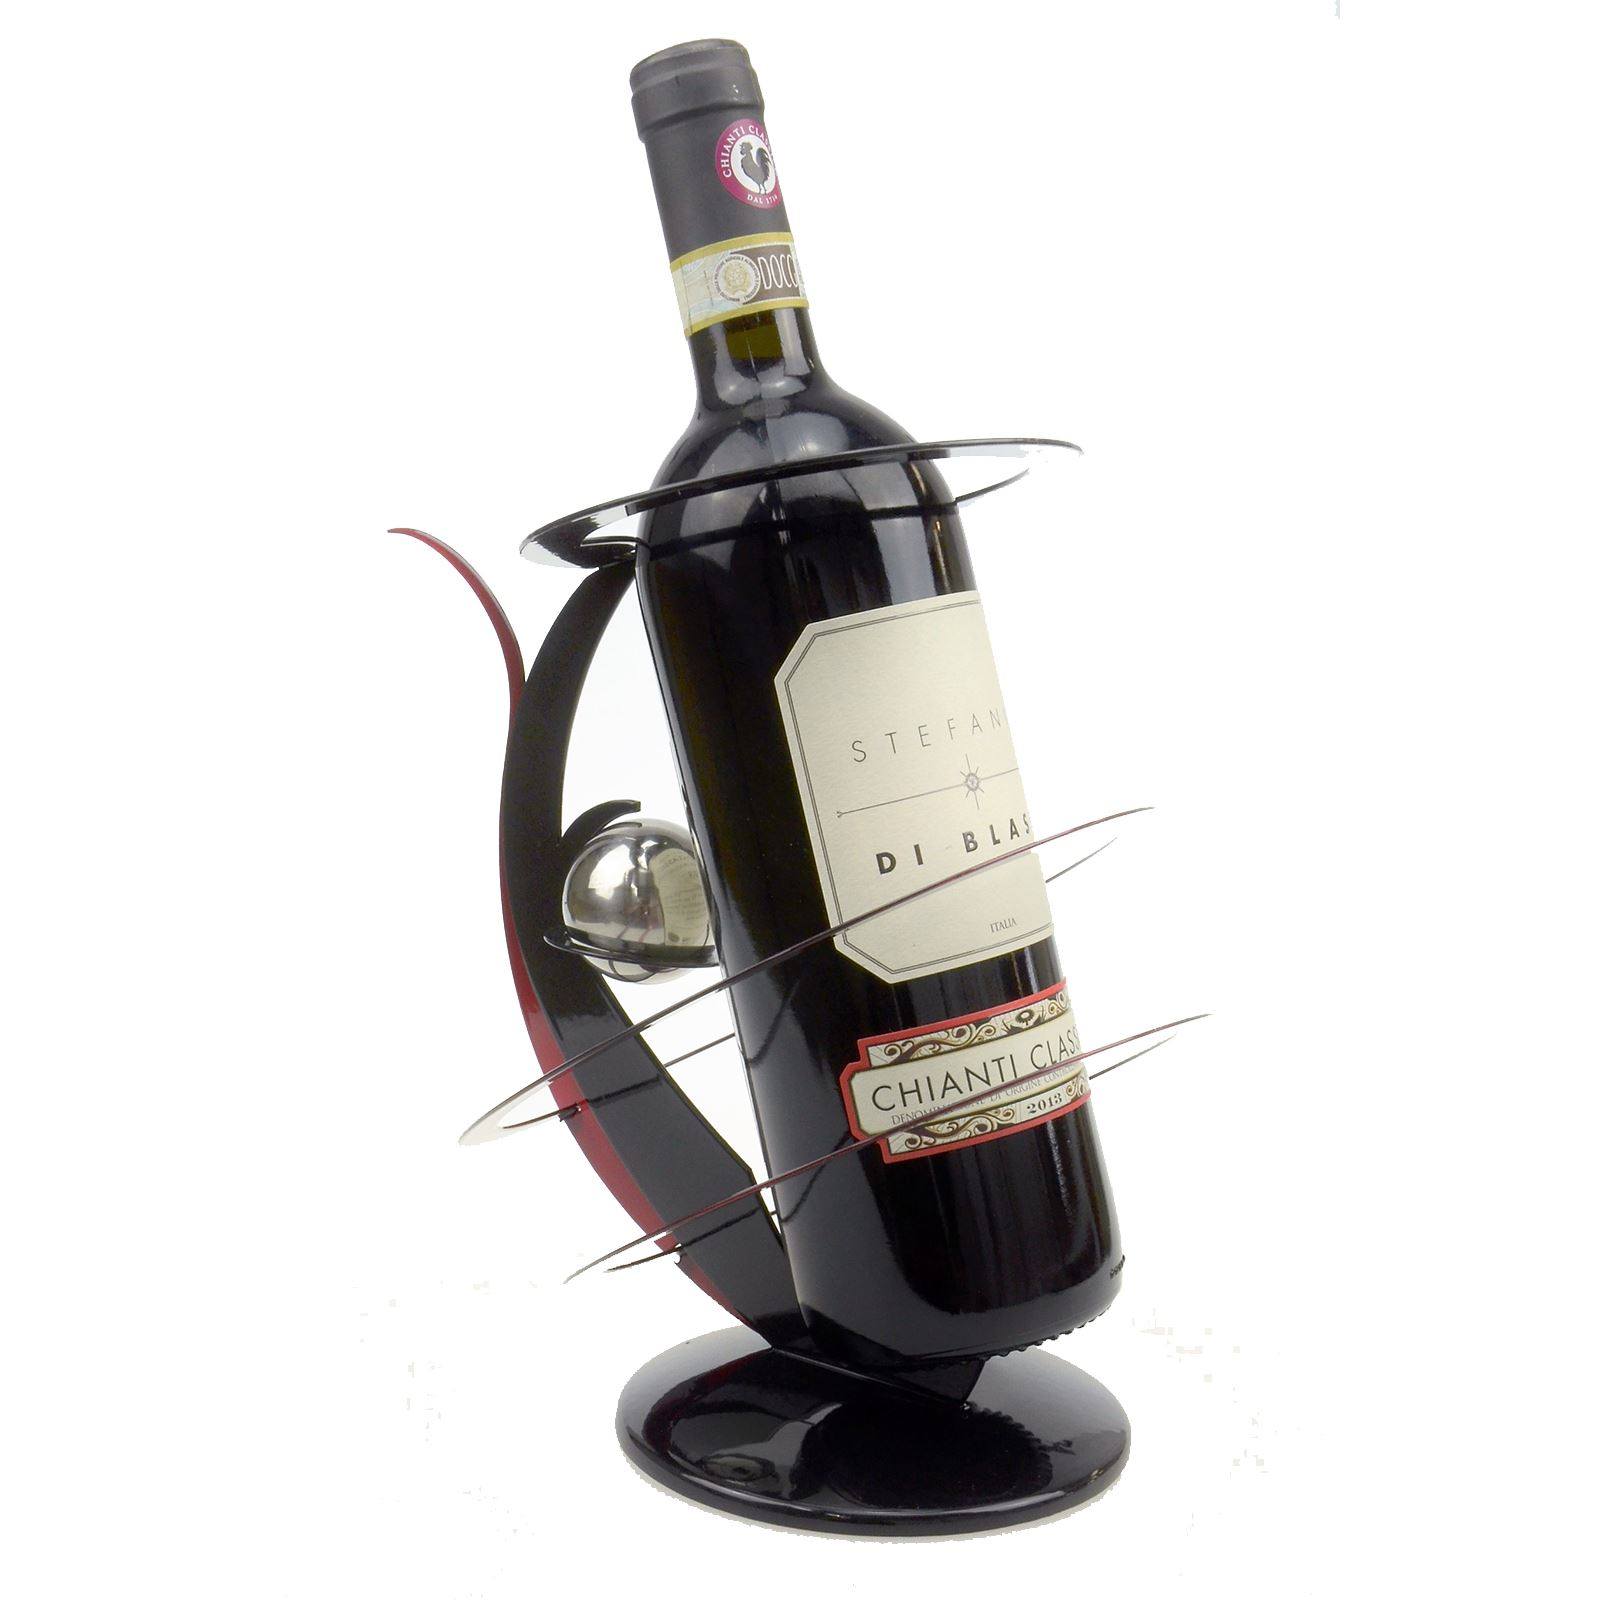 Flower vase wine bottle holder glass metal centrepiece home decor black red ebay - Wire wine bottle carrier ...